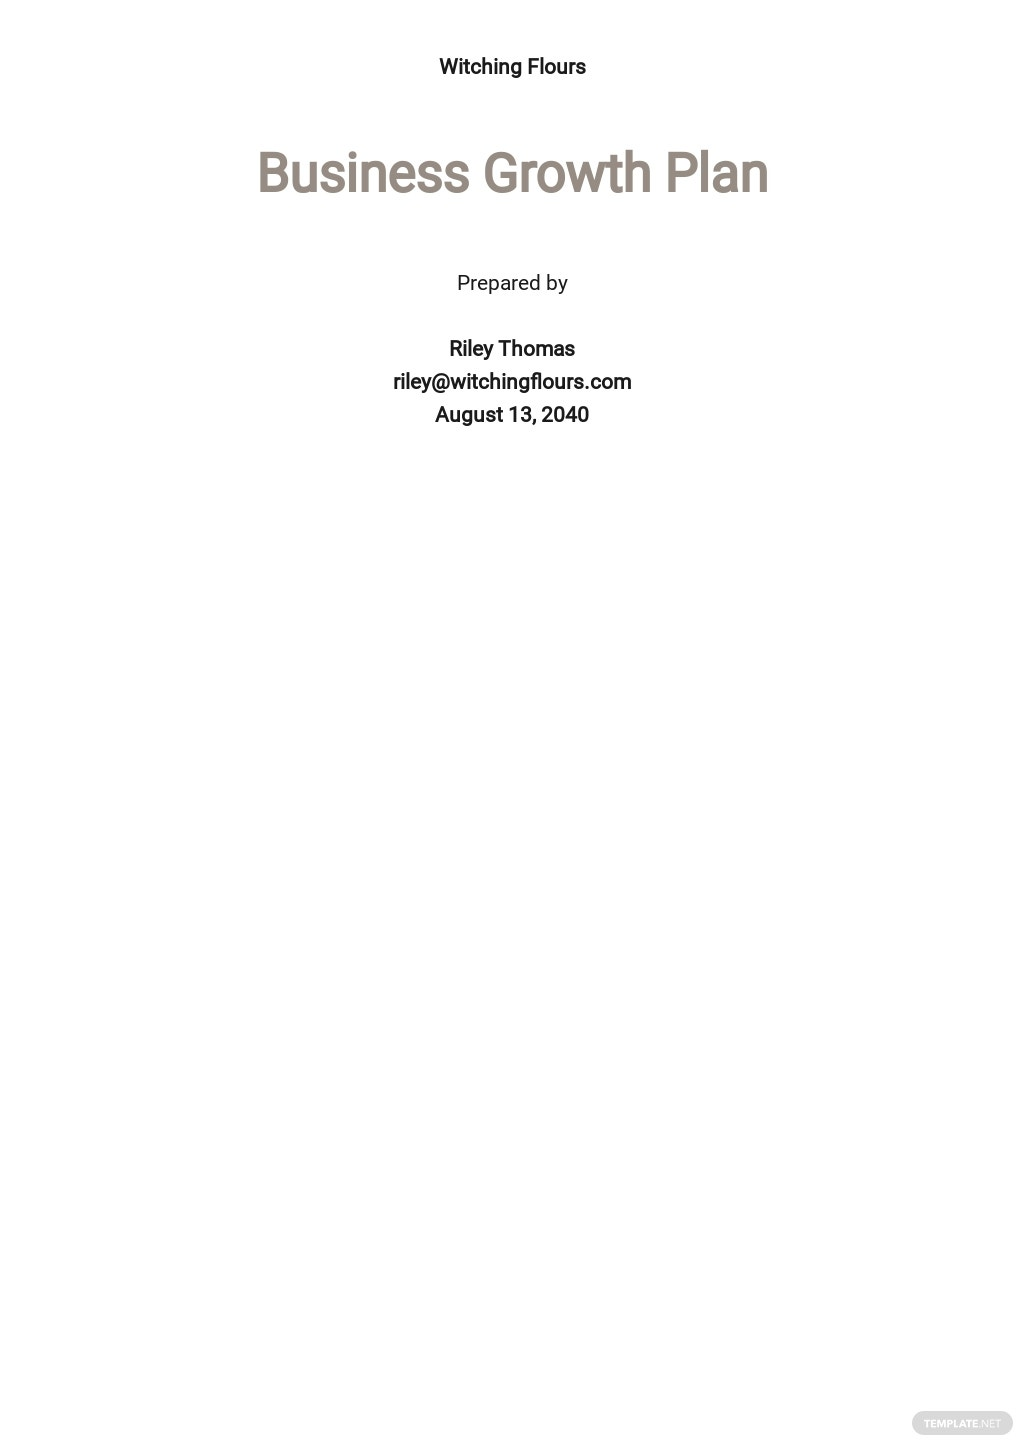 Free Business Growth Plan Template.jpe